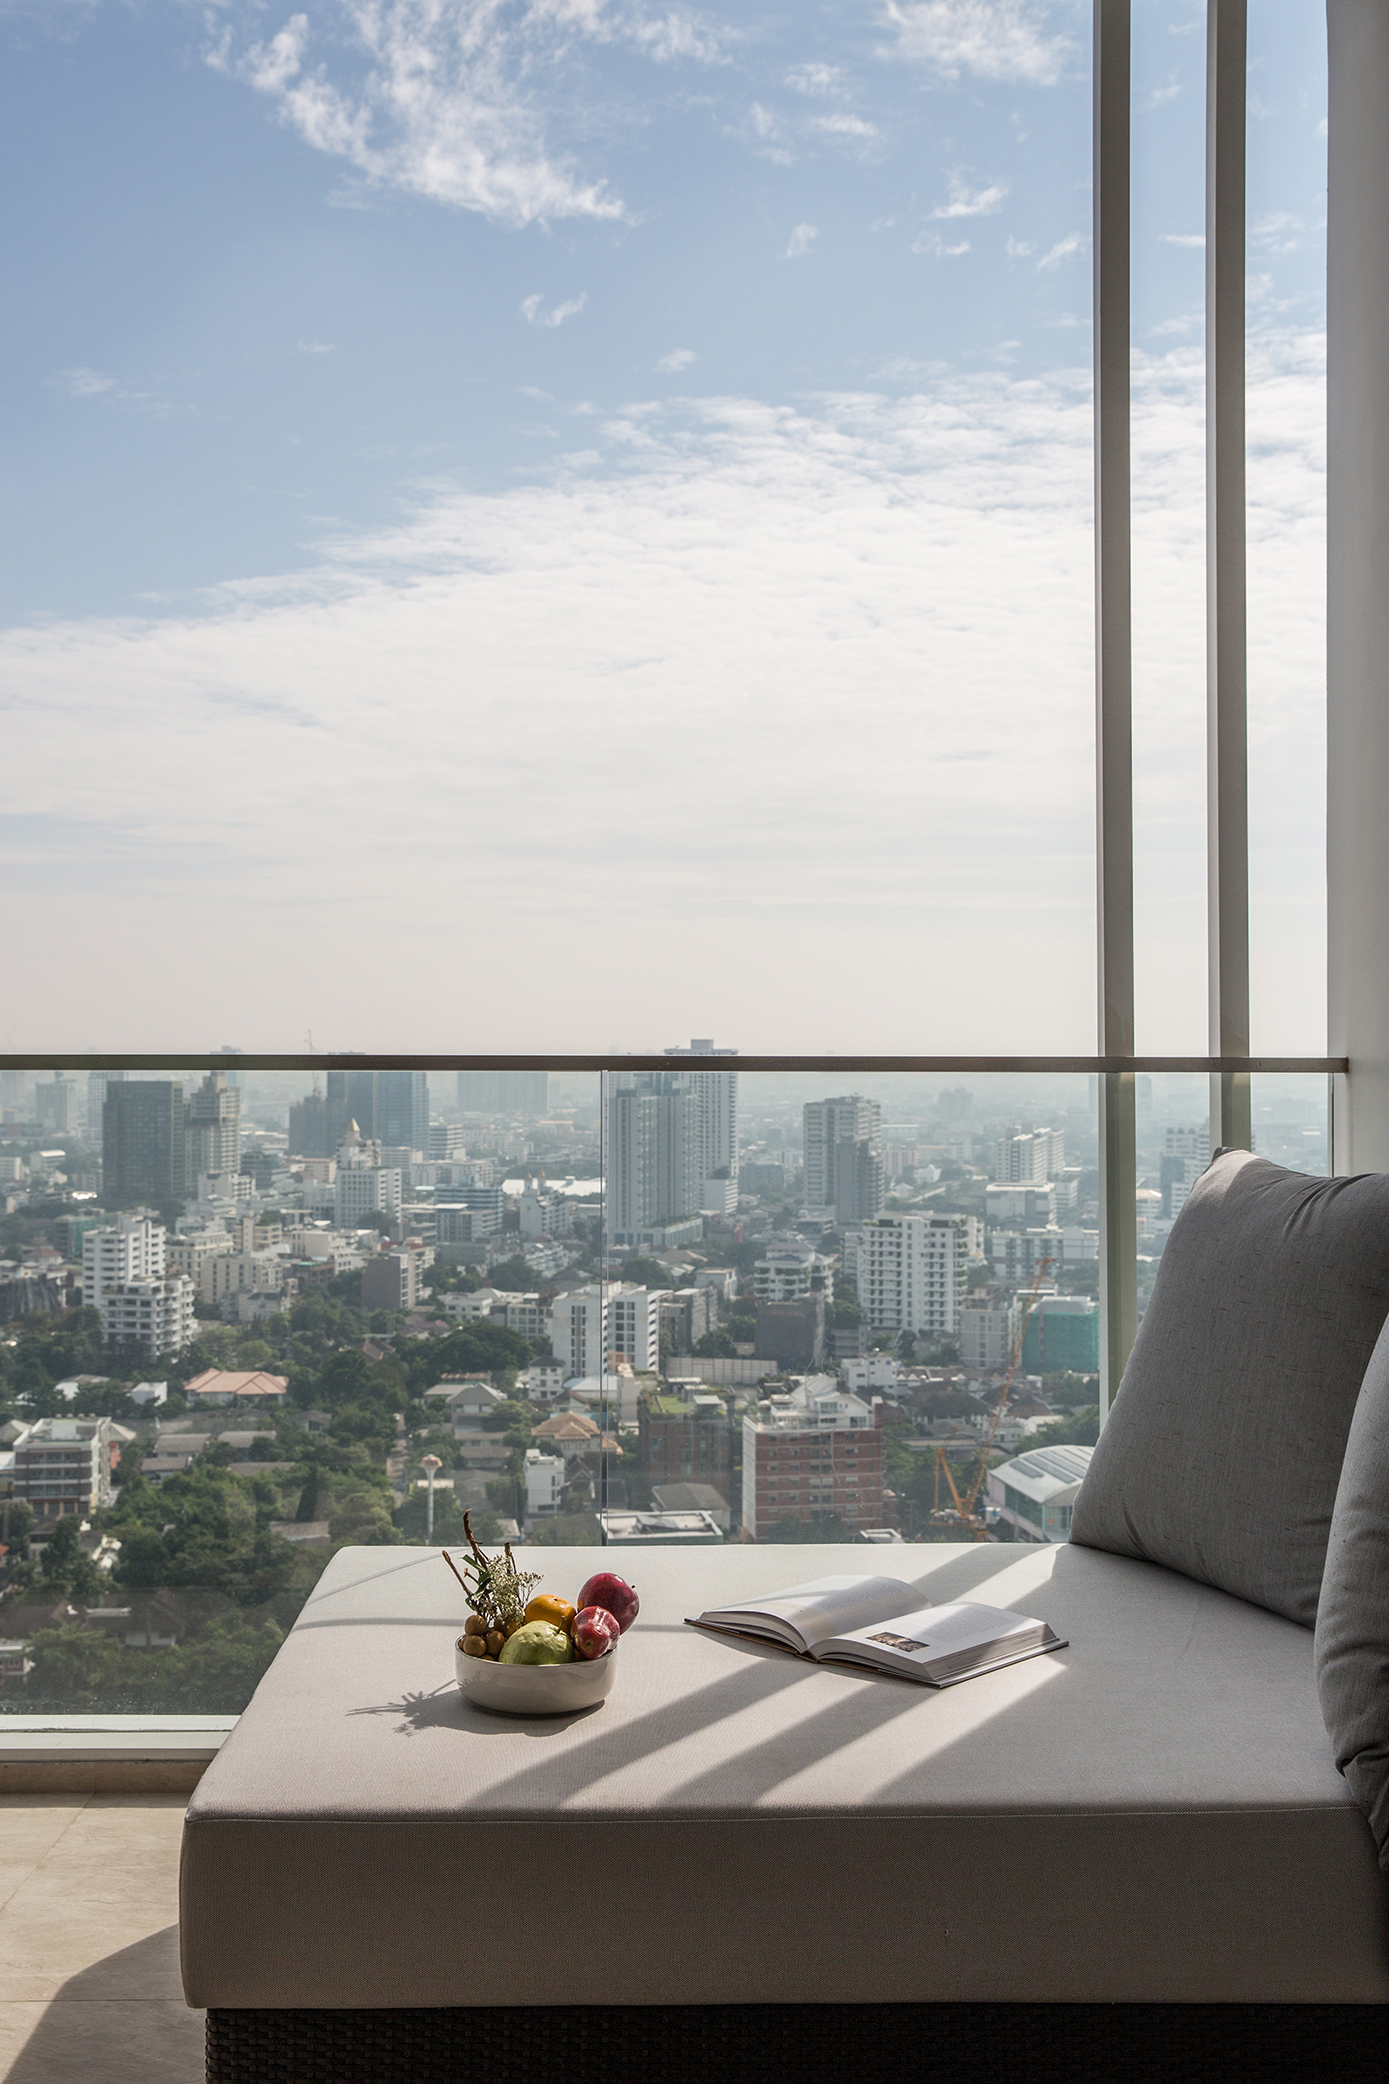 Balcony view from one of the rooms at 137 Pillars Bangkok.